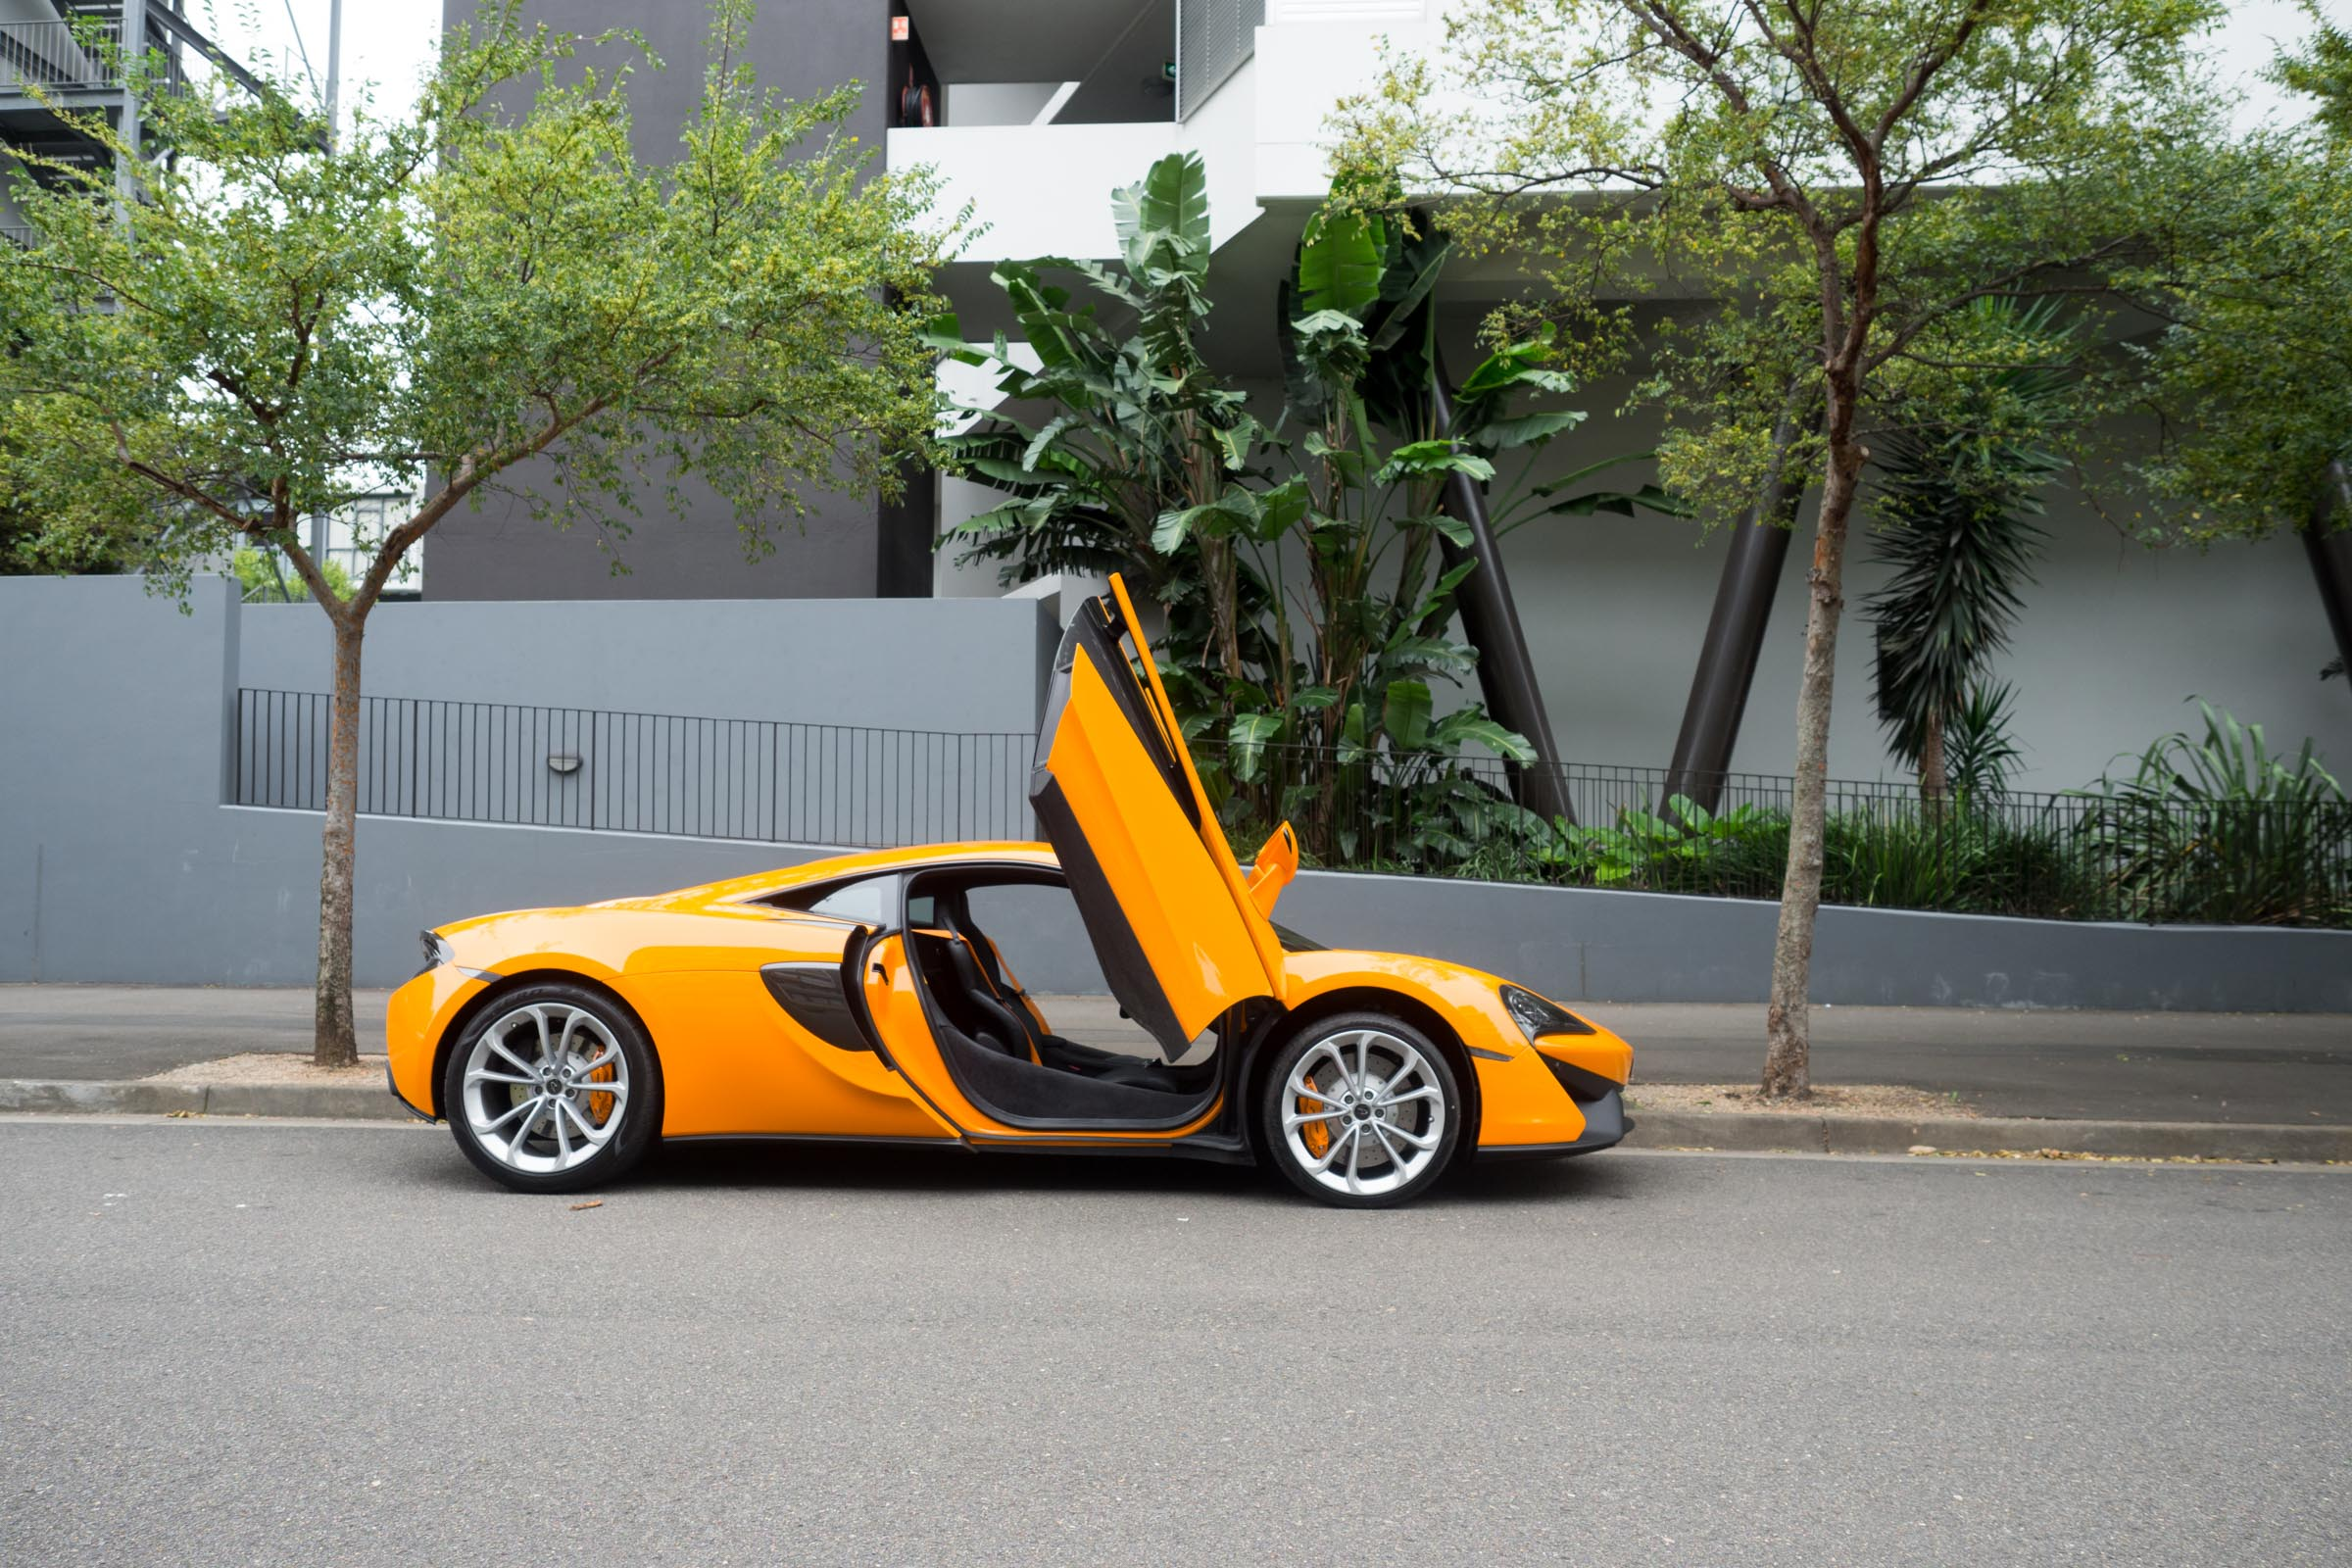 McLaren 540C Review Australia | Hey Gents